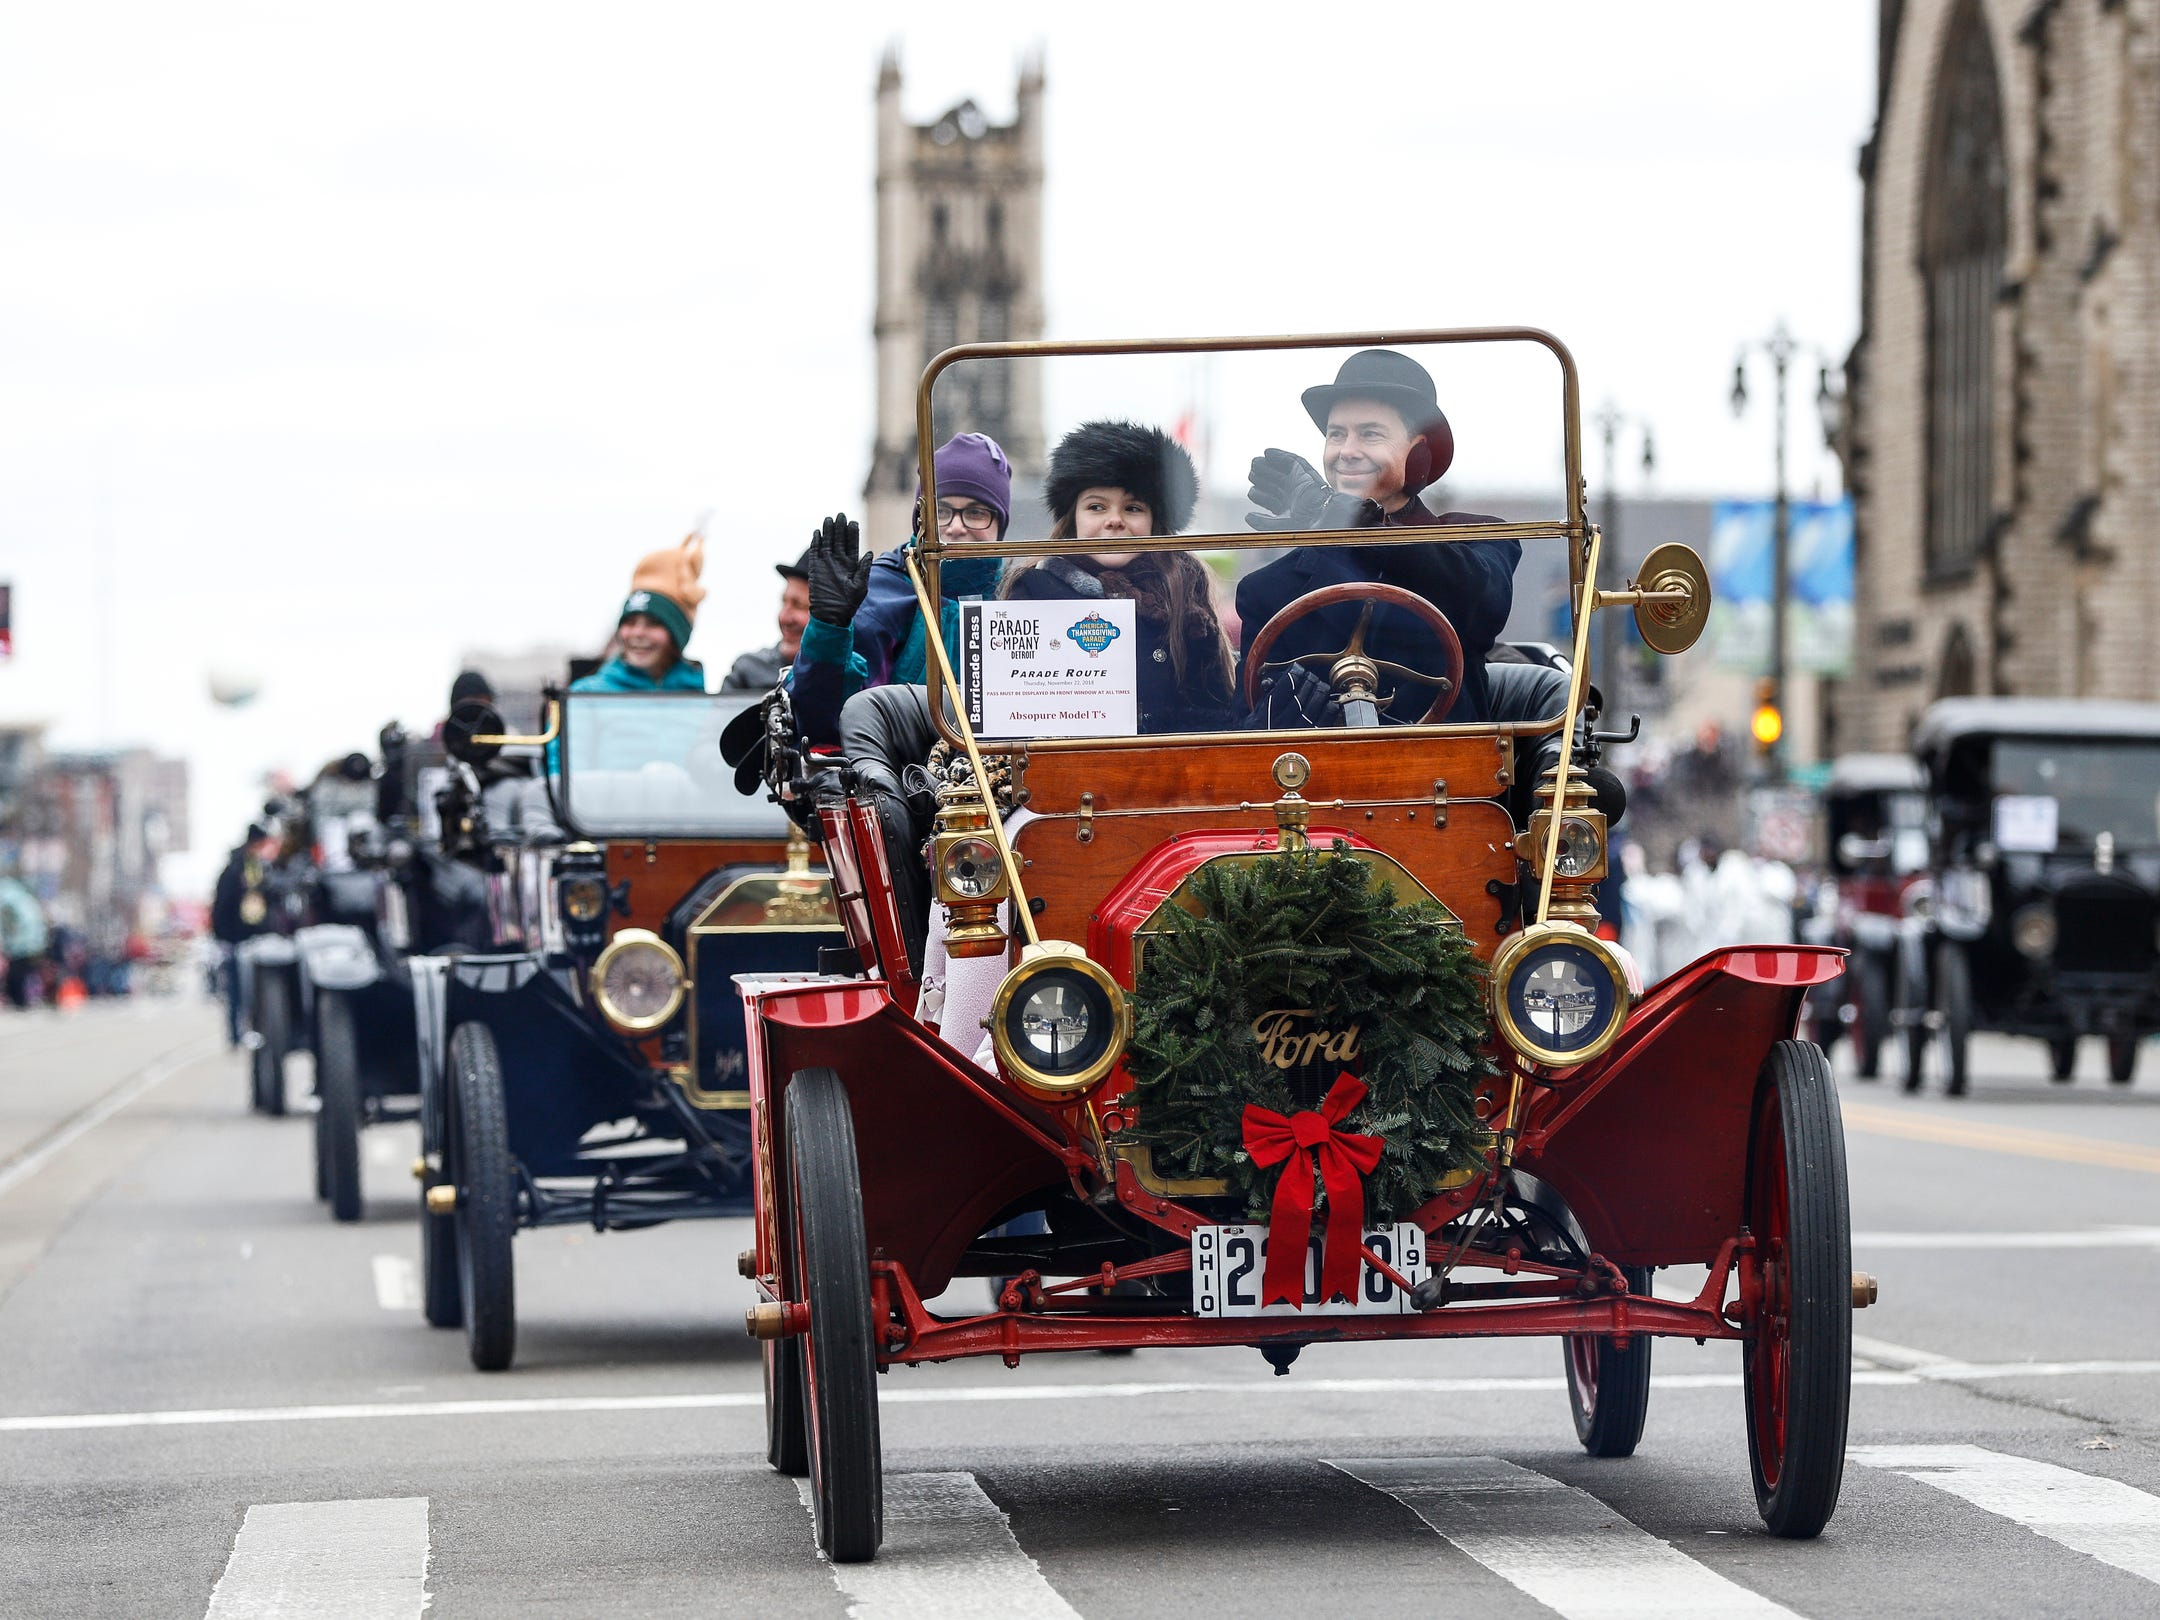 Parade participants make their way down Woodward Avenue during the 92nd America's Thanksgiving Day Parade in Detroit, Thursday, Nov. 22, 2018.